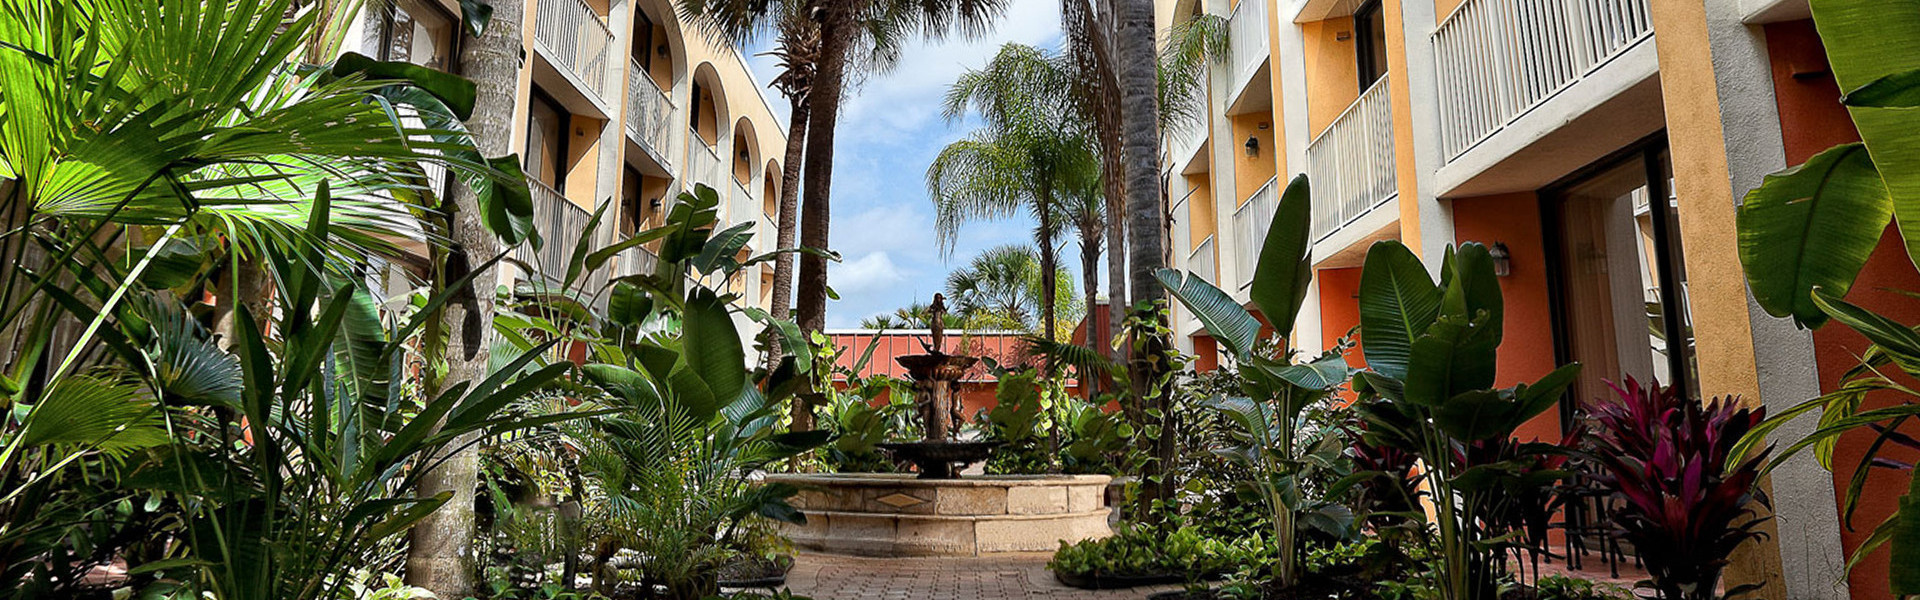 Courtesy Hotel Room Block For Weddings - Exterior of Westgate Lakes Resort & Spa